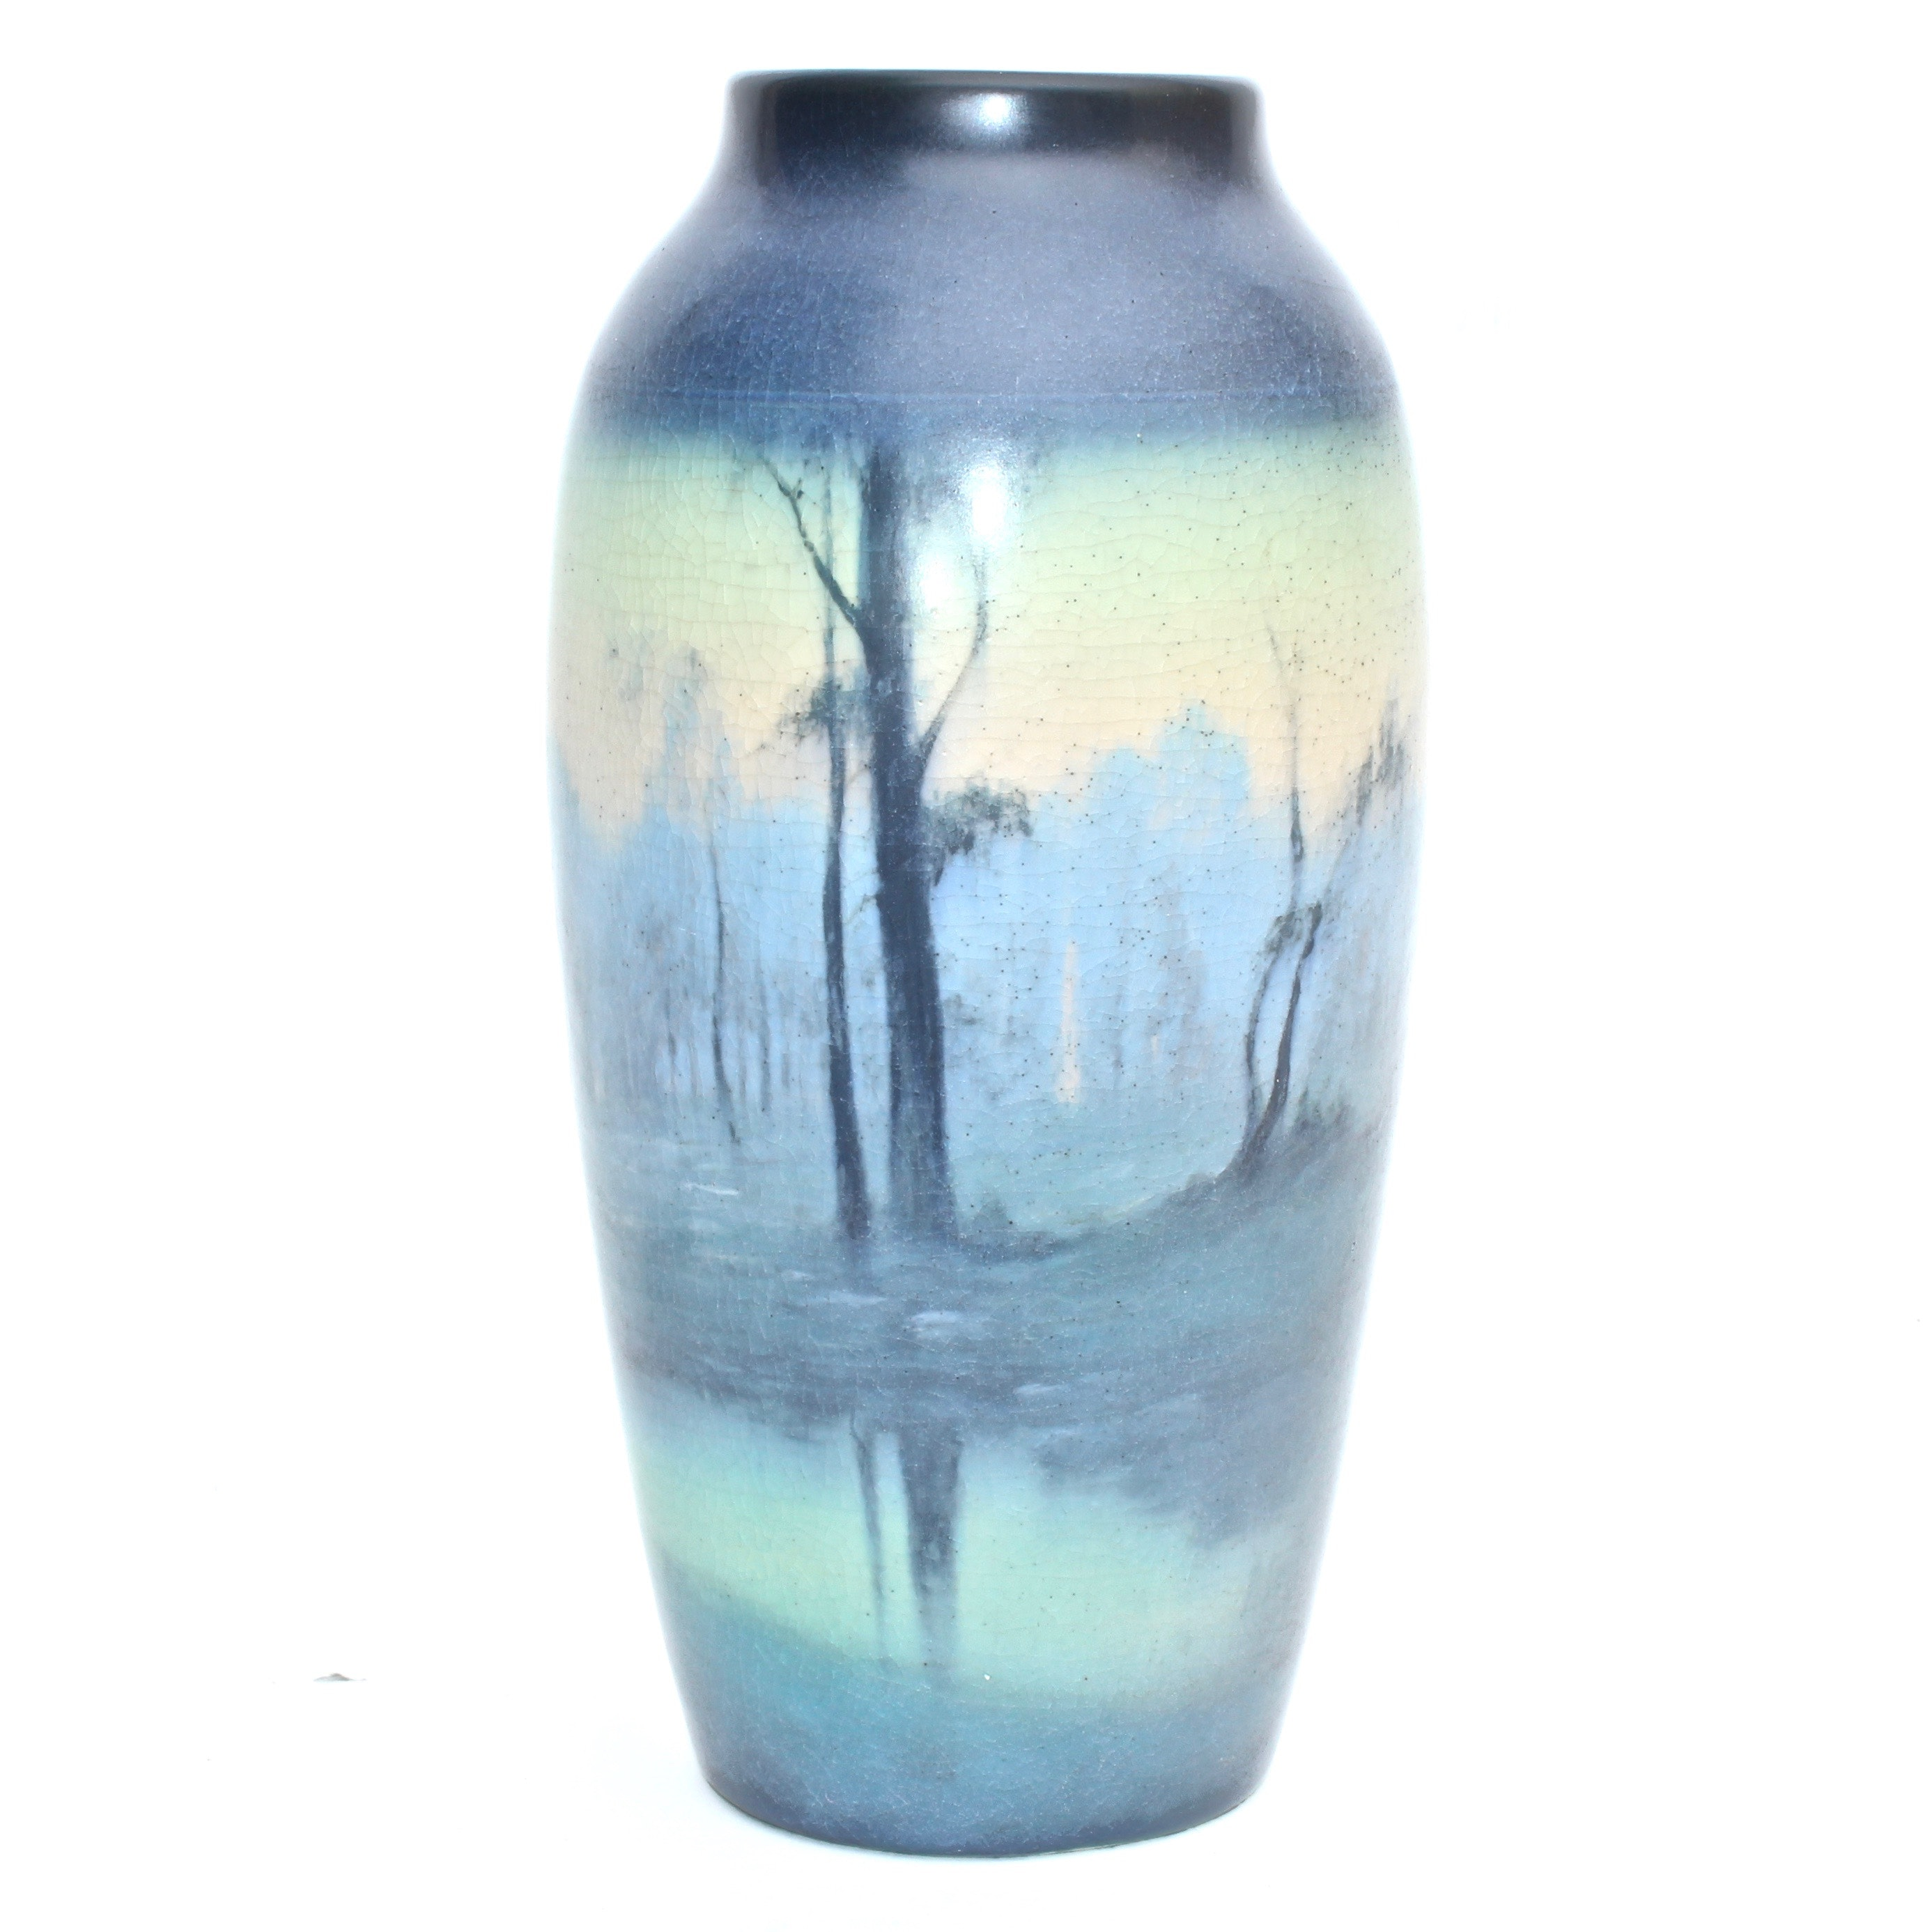 Rookwood Pottery Ceramic Vase by Fred Rothenbusch